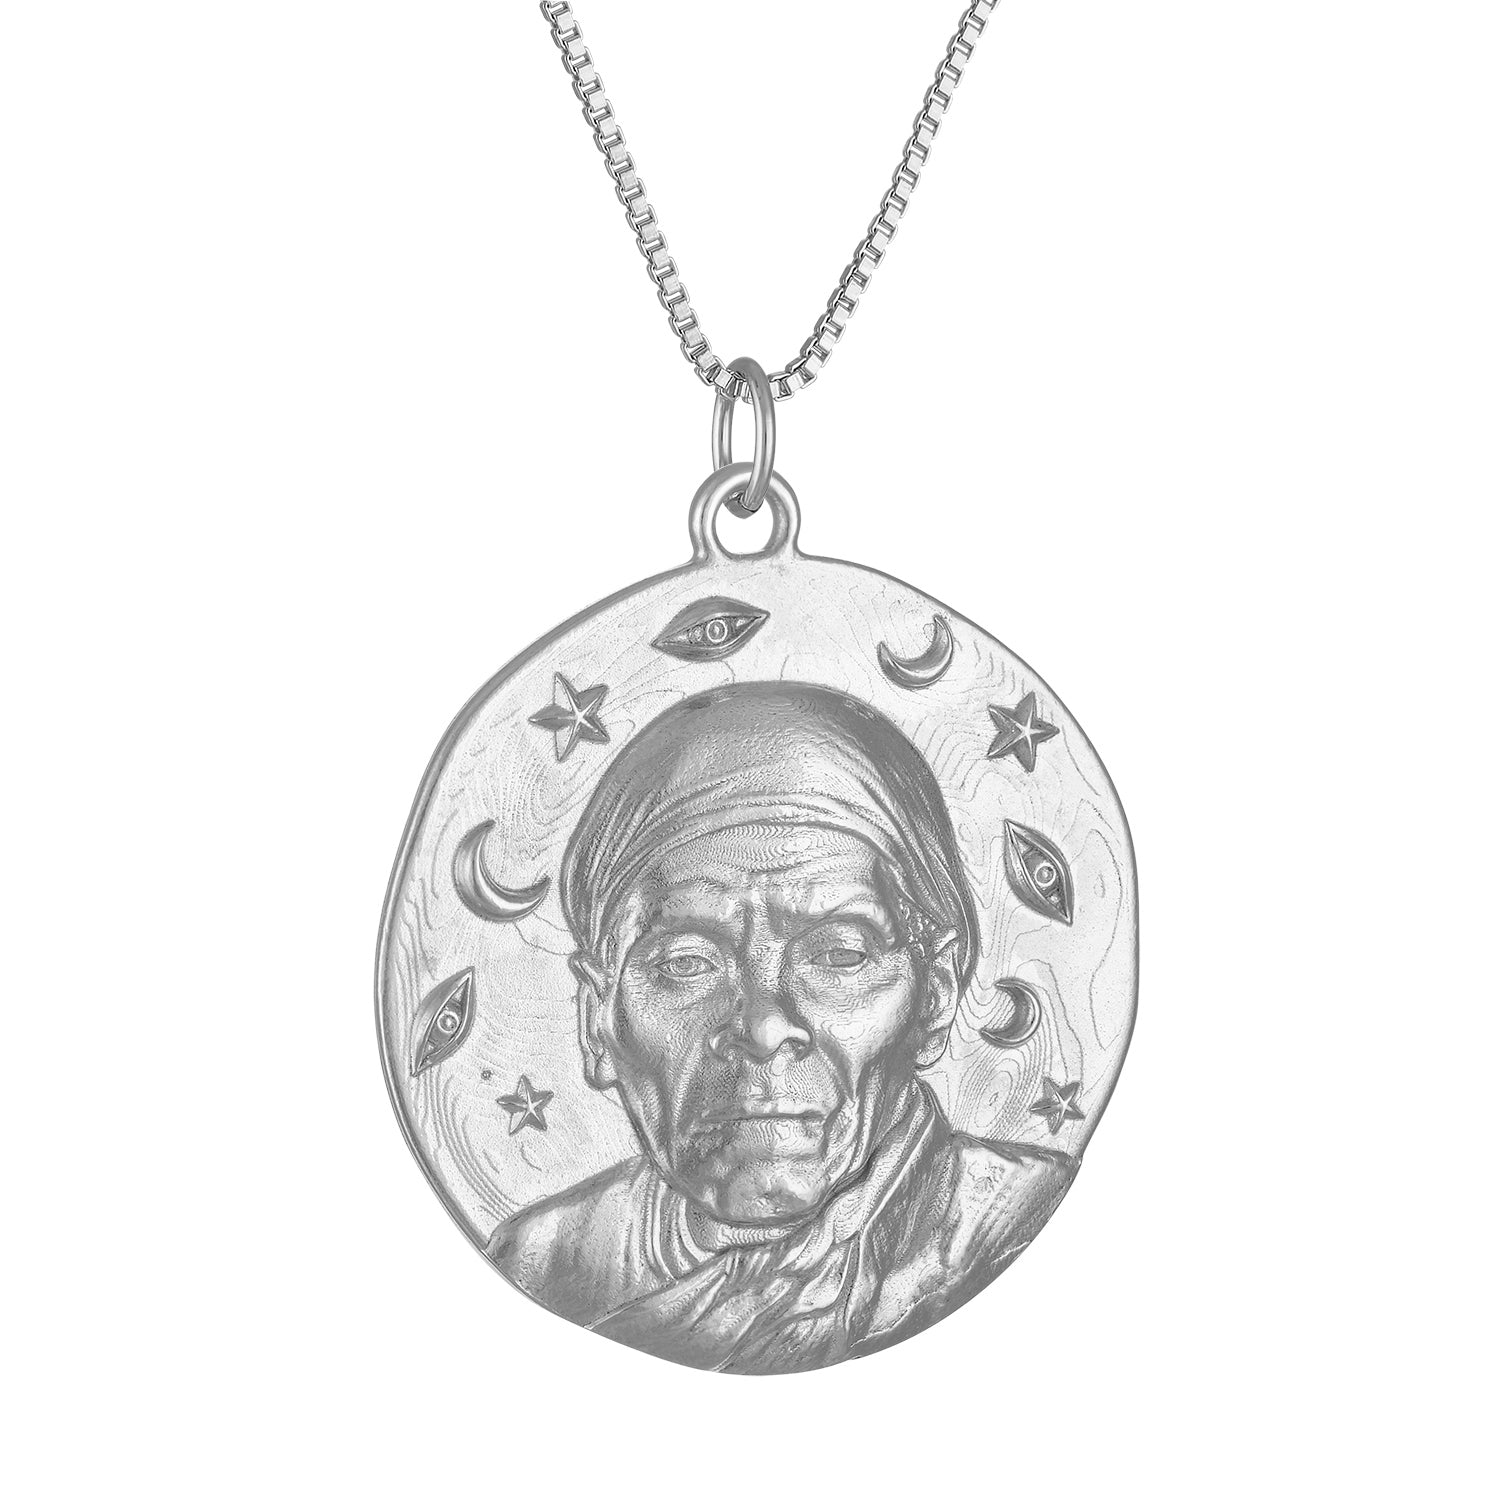 Harriet Tubman Round Medallion